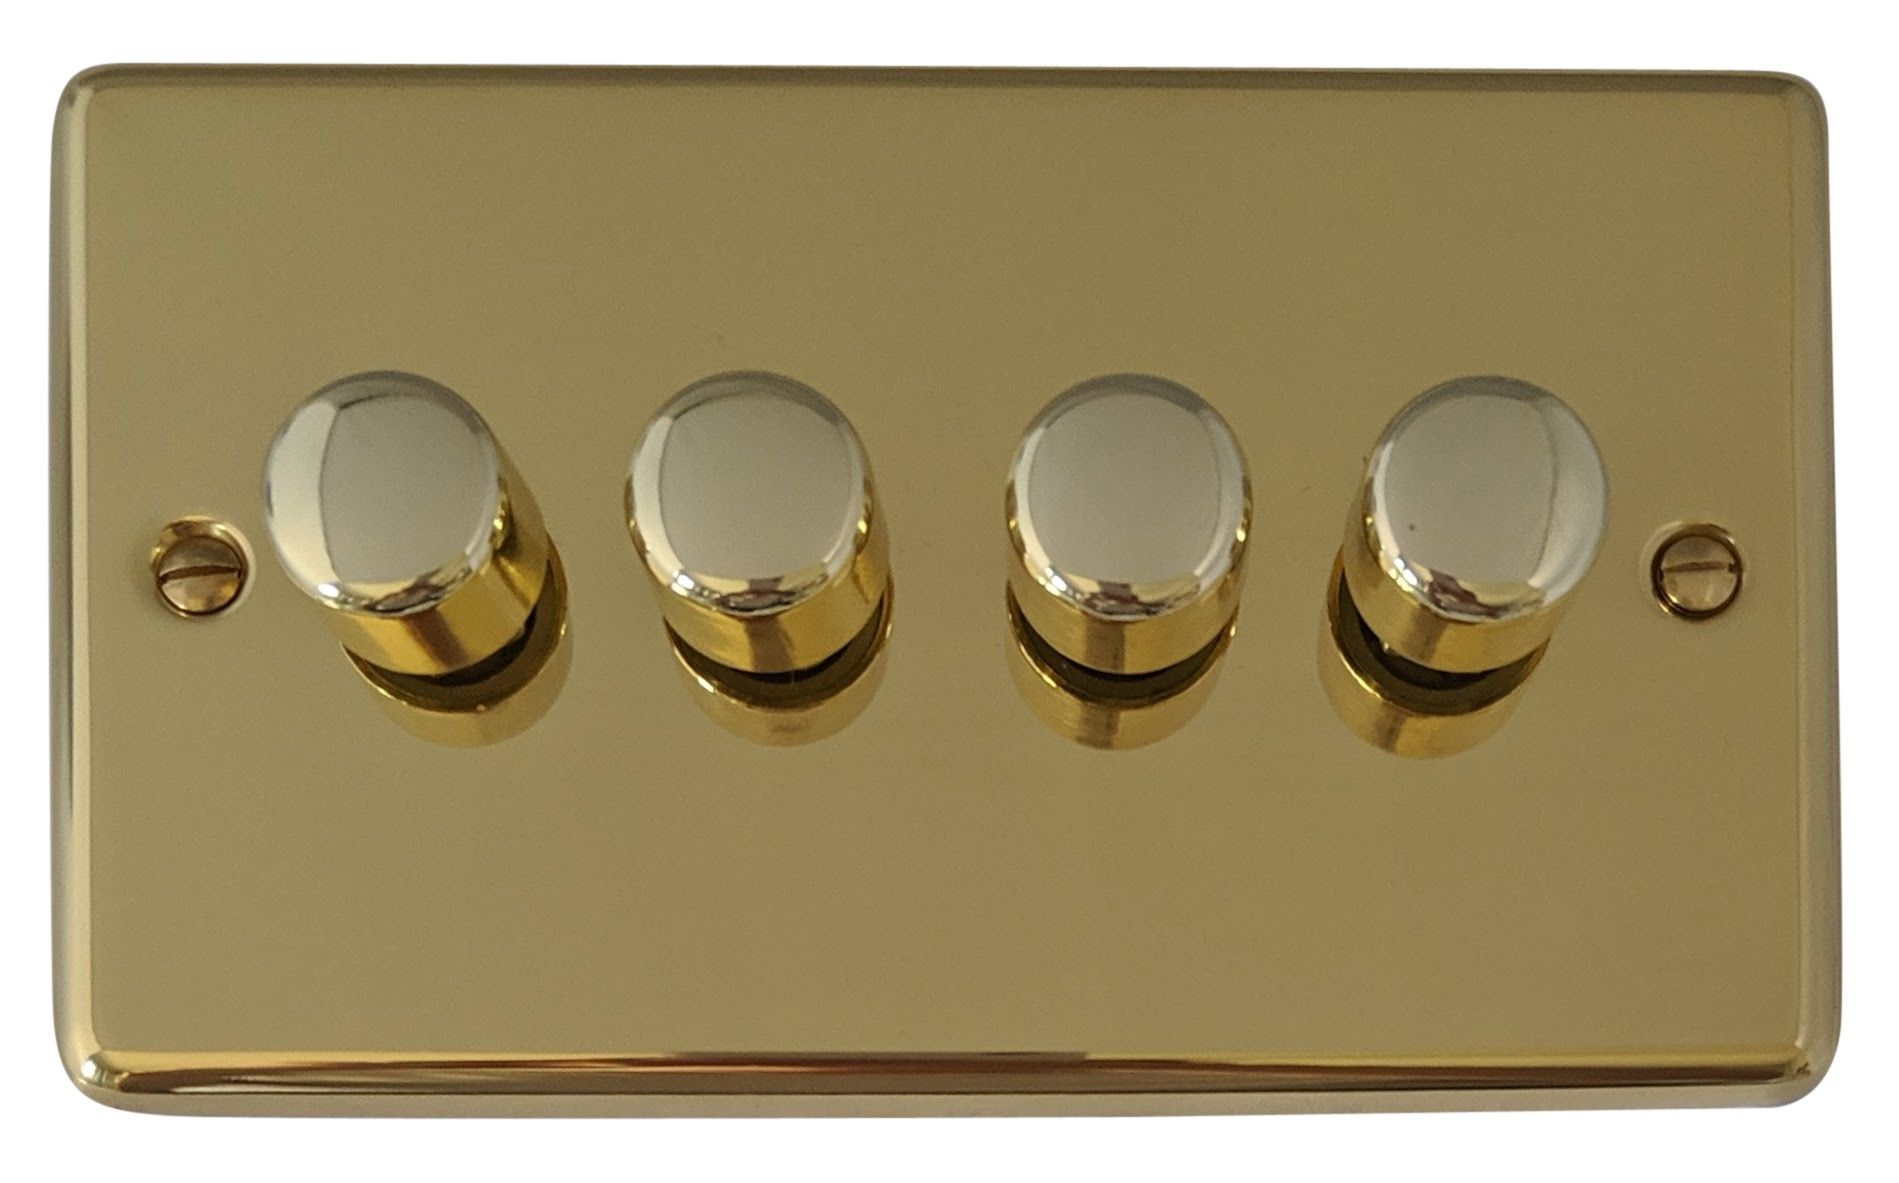 G&H CB14 Standard Plate Polished Brass 4 Gang 1 or 2 Way 40-400W Dimmer Switch